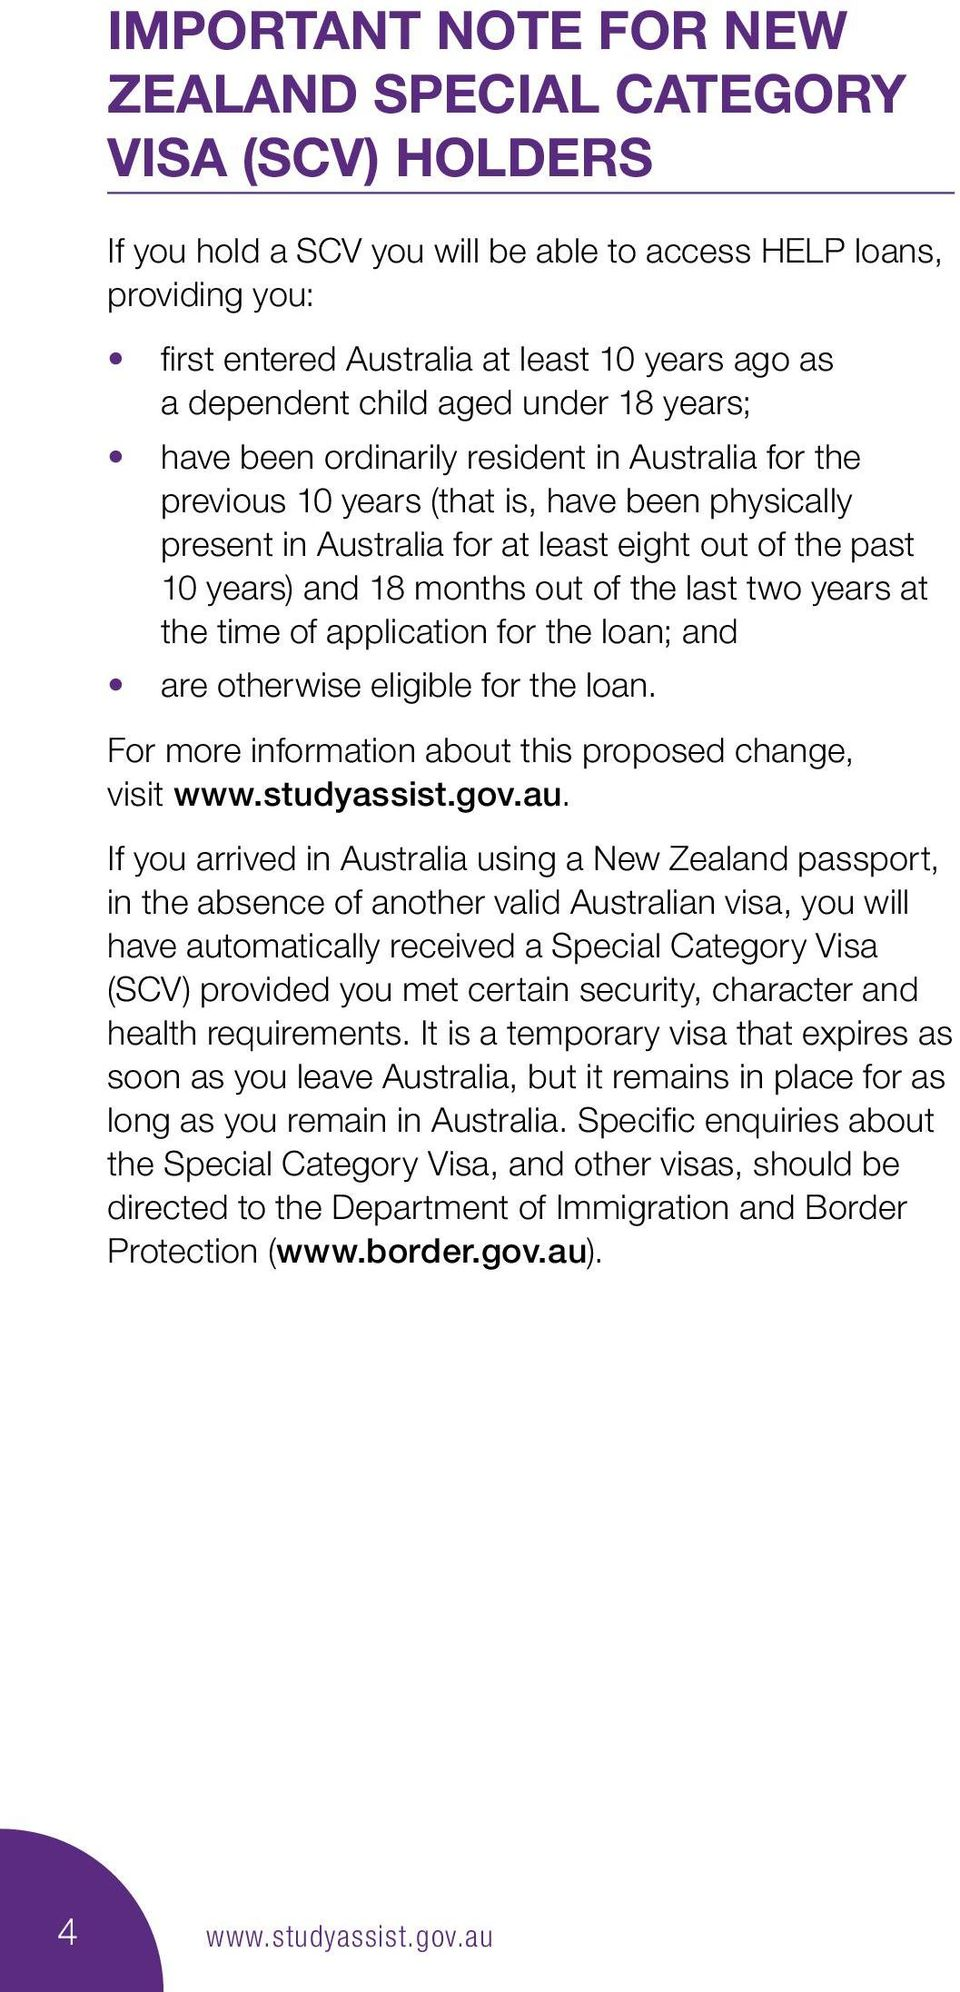 months out of the last two years at the time of application for the loan; and are otherwise eligible for the loan. For more information about this proposed change, visit www.studyassist.gov.au.